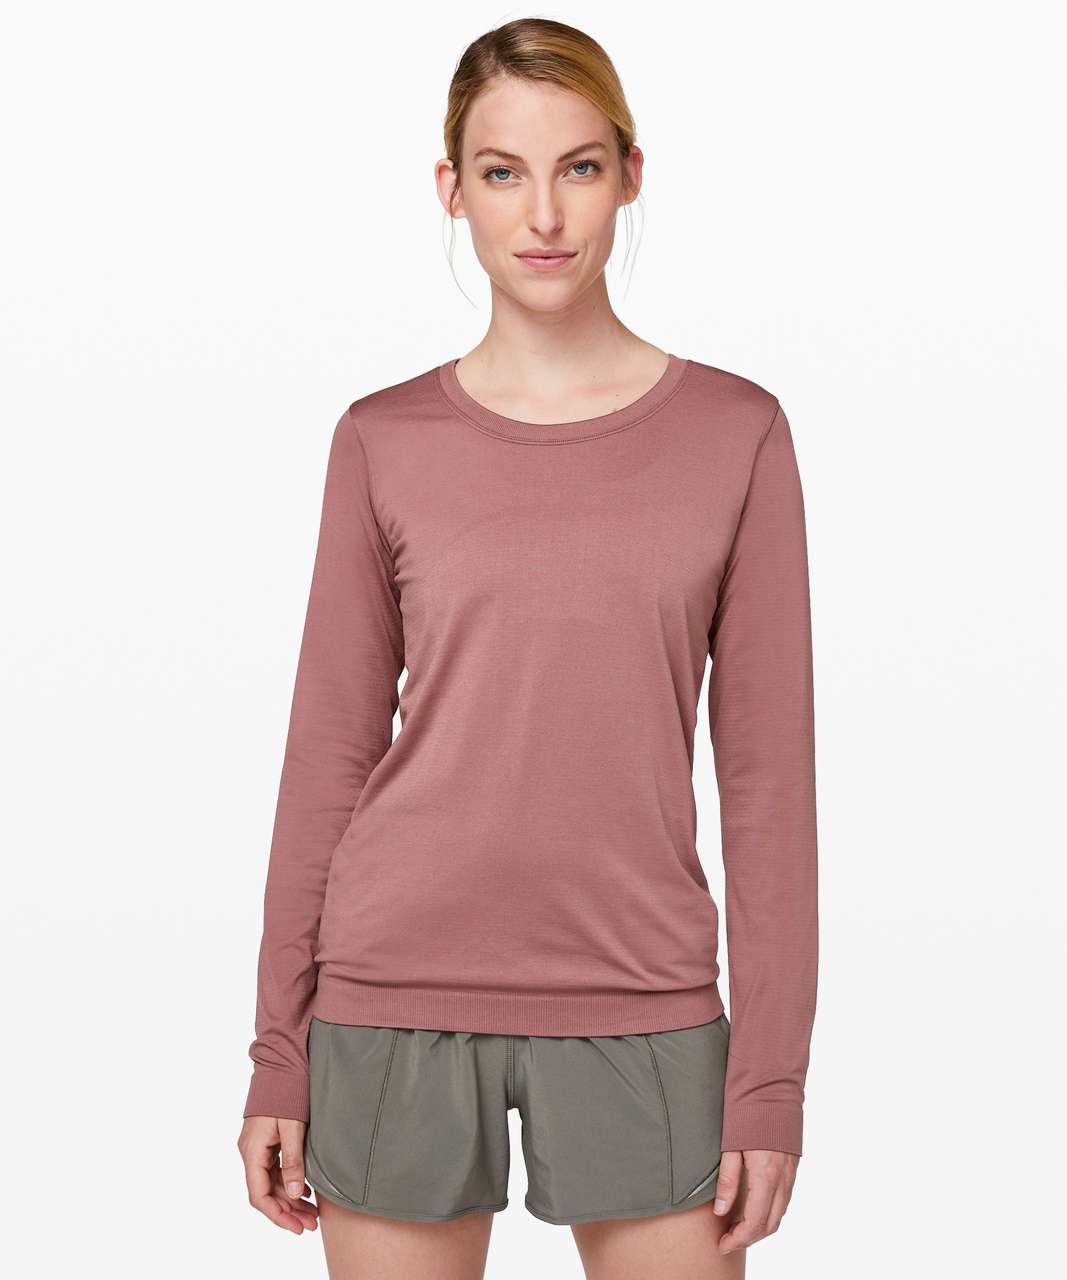 Lululemon Swiftly Tech Long Sleeve (Breeze) *Relaxed Fit - Red Dust / Red Dust